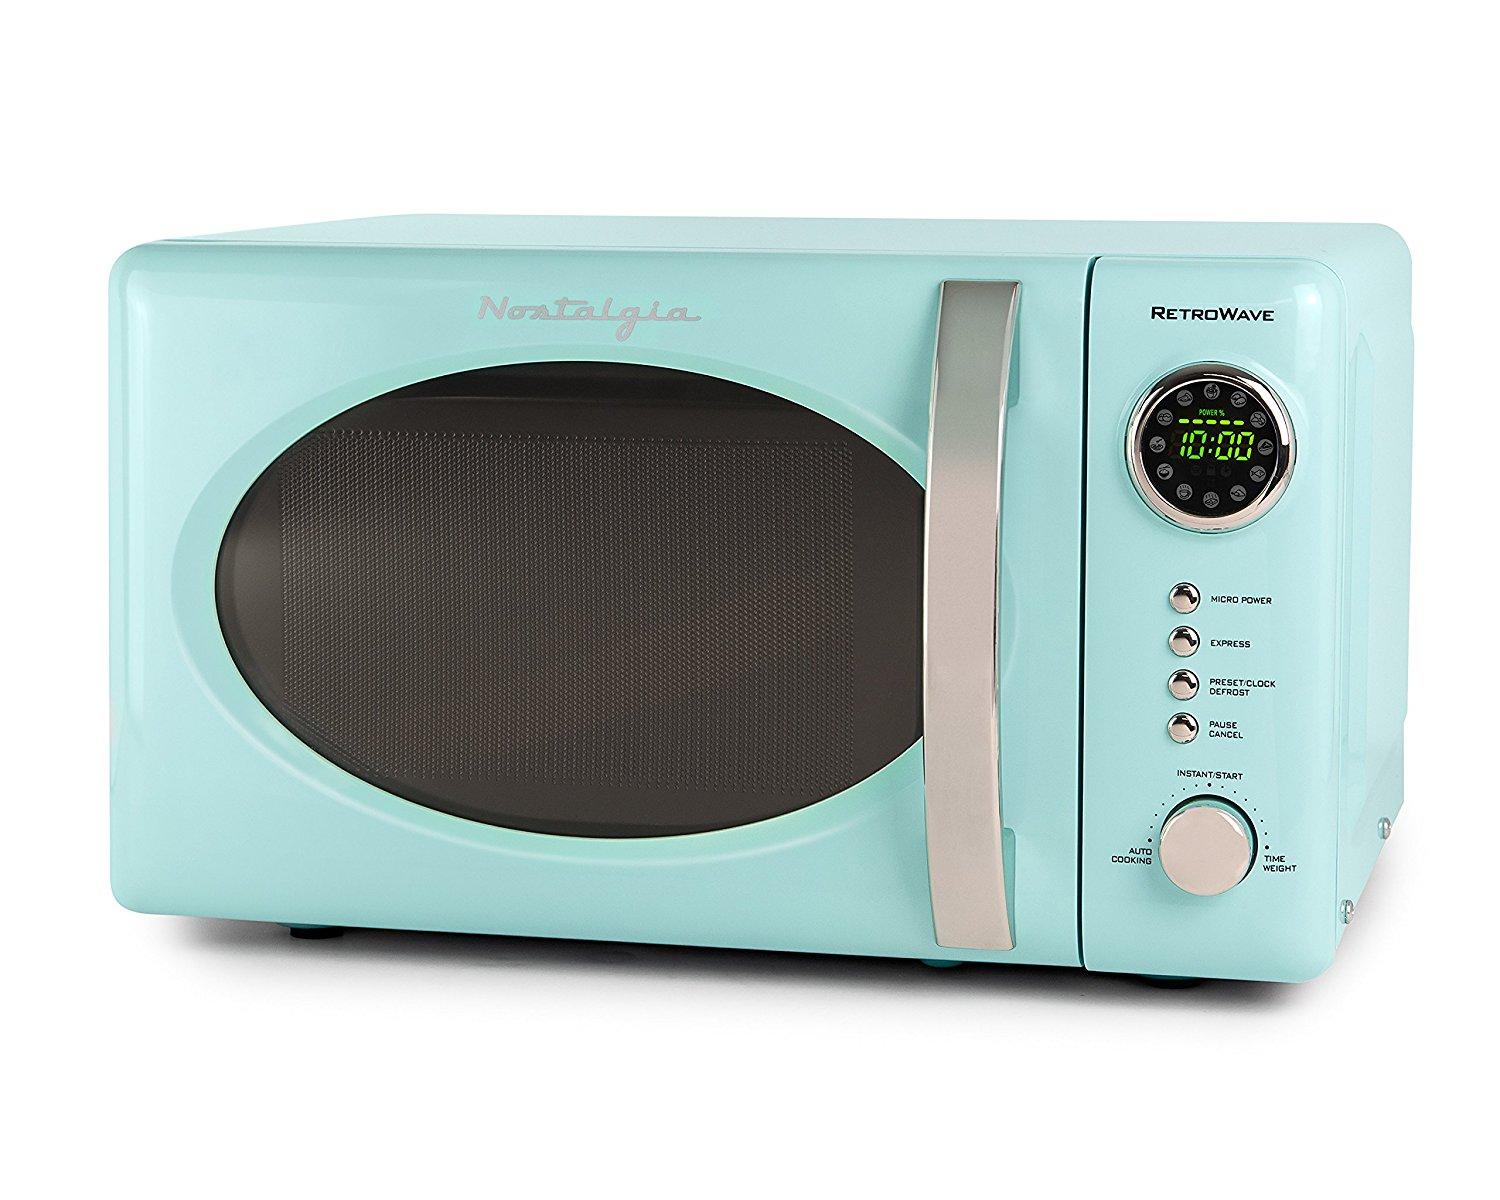 Nostalgia Aqua Blue Retro Microwave Oven | Everything Turquoise